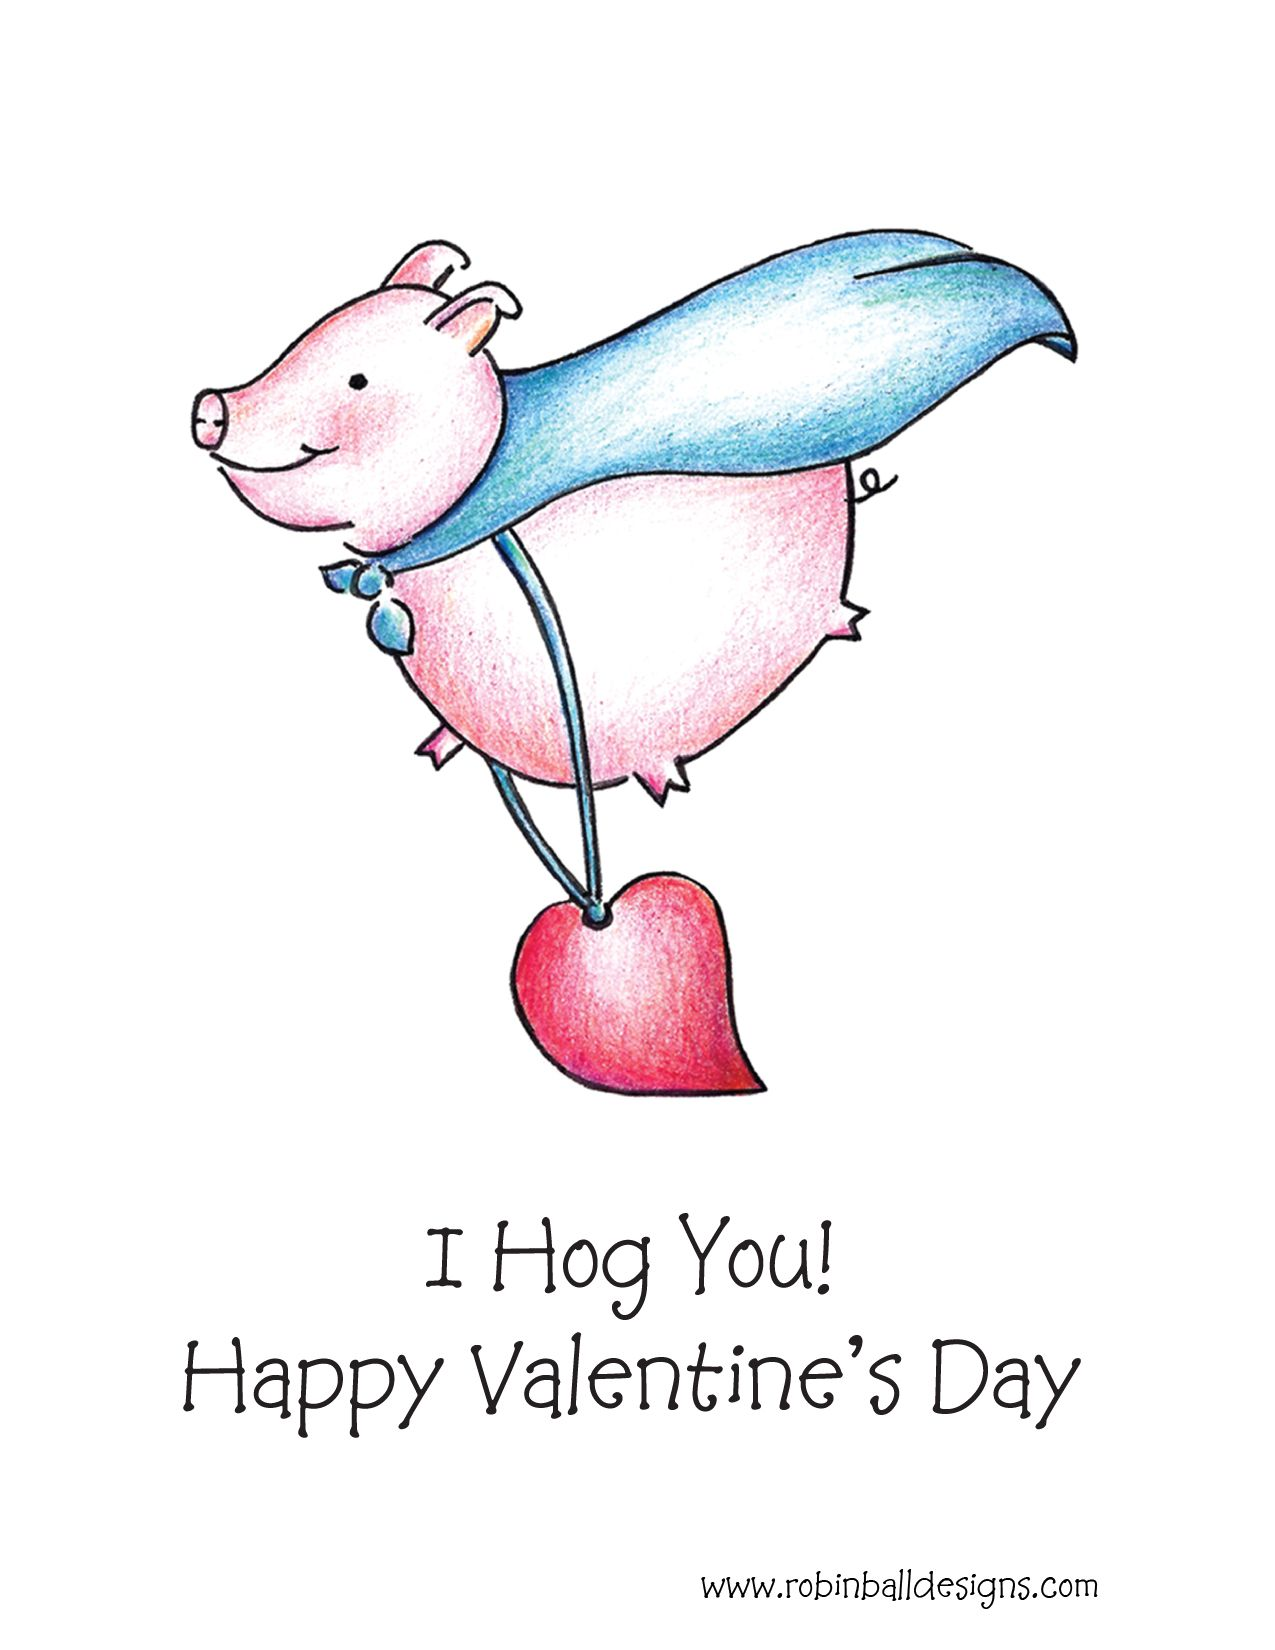 300 valentine flying pig greeting card this humorous handmade 300 valentine flying pig greeting card this humorous handmade card will bring a smile to kristyandbryce Gallery